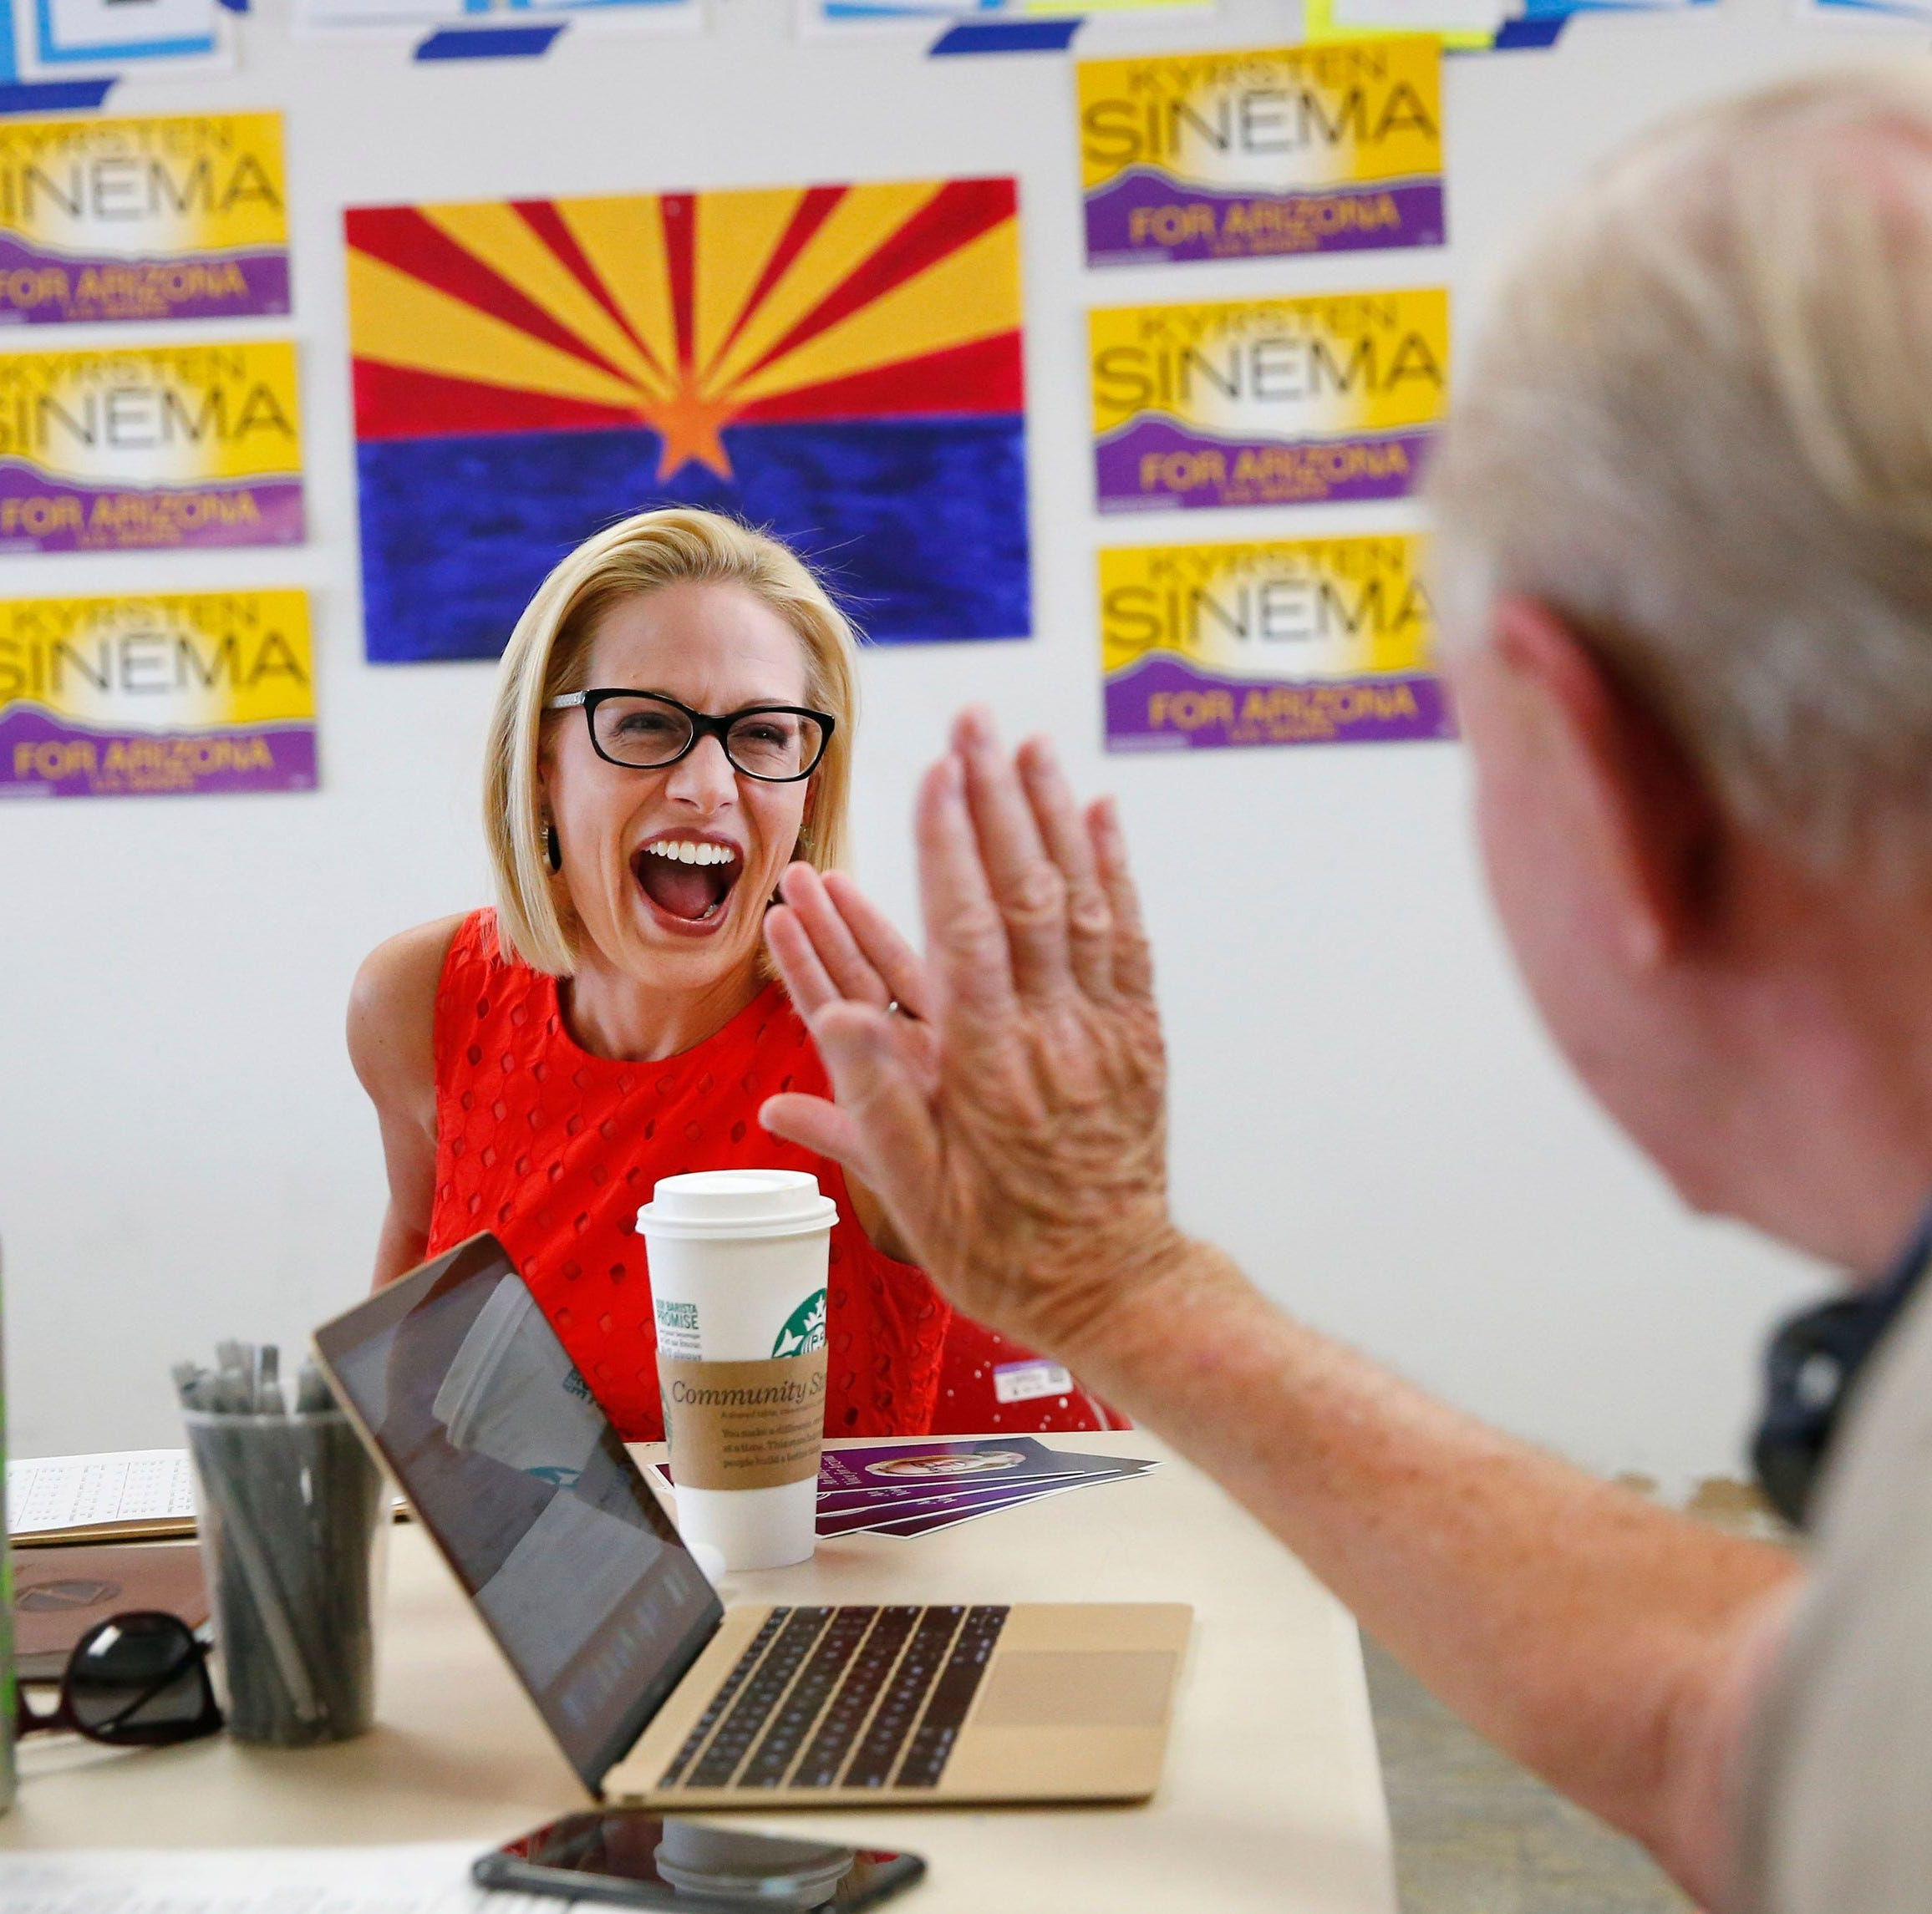 Arizona's 'blue wave' is real, but it's not what you think